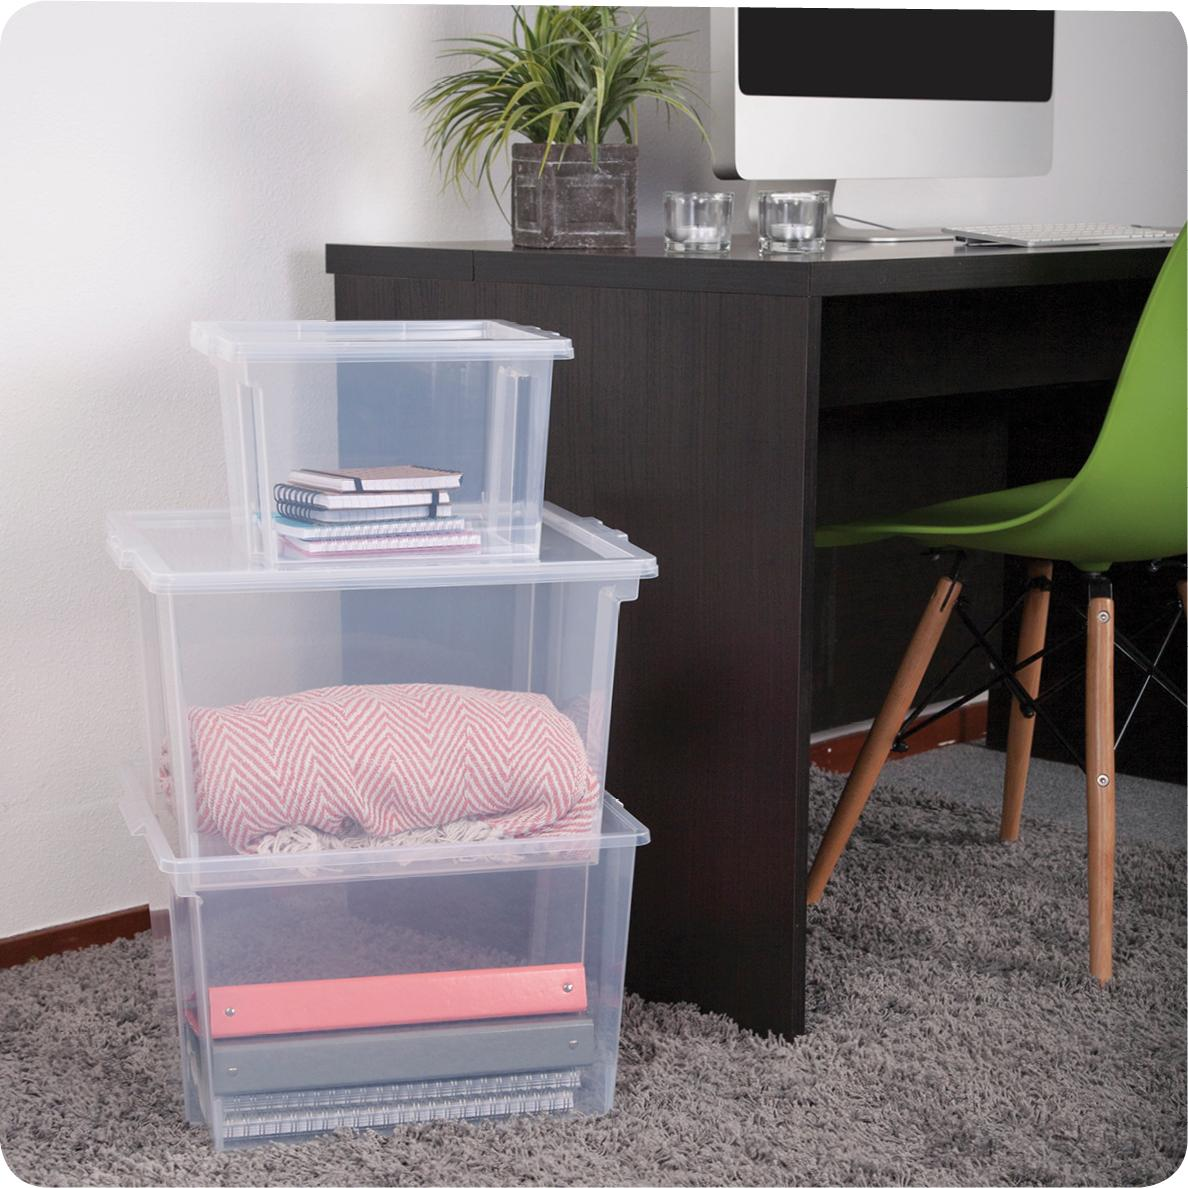 iris 130623 6er set aufbewahrungsboxen kisten mit deckel stapelboxen 39 useful storage box. Black Bedroom Furniture Sets. Home Design Ideas